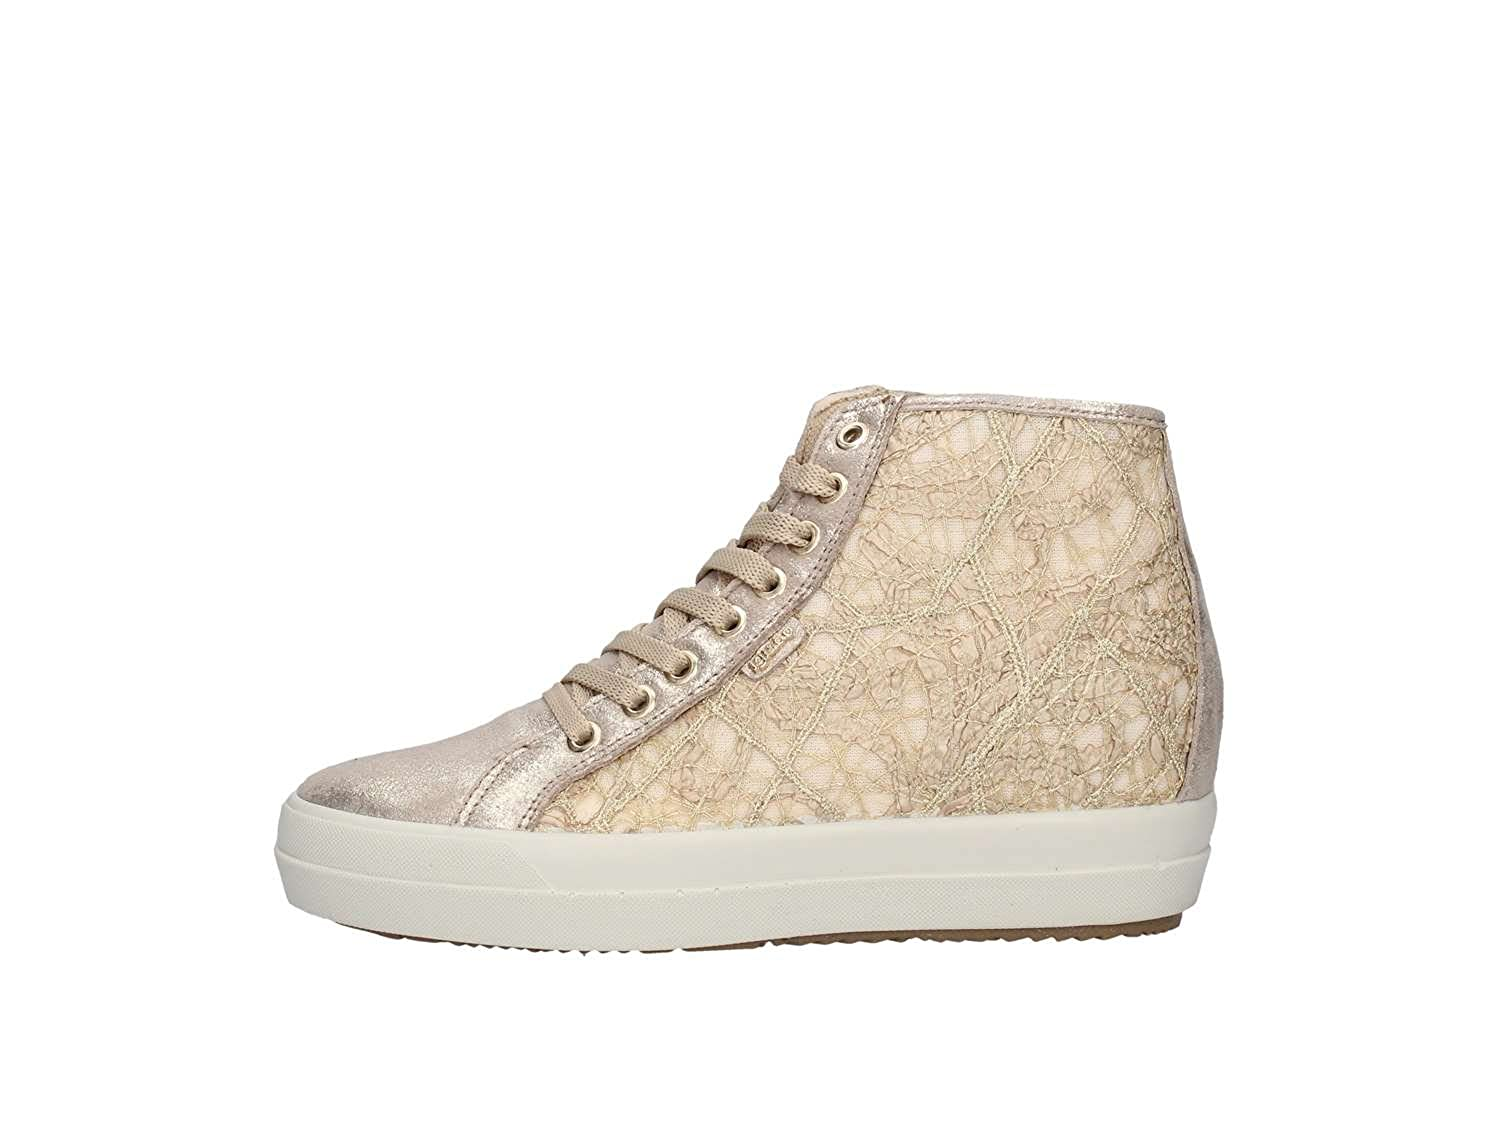 IGI&CO 11502 Taupe Scarpa Donna Sneaker Zeppa Interna Pelle e Pizzo Made in Italy Taupe